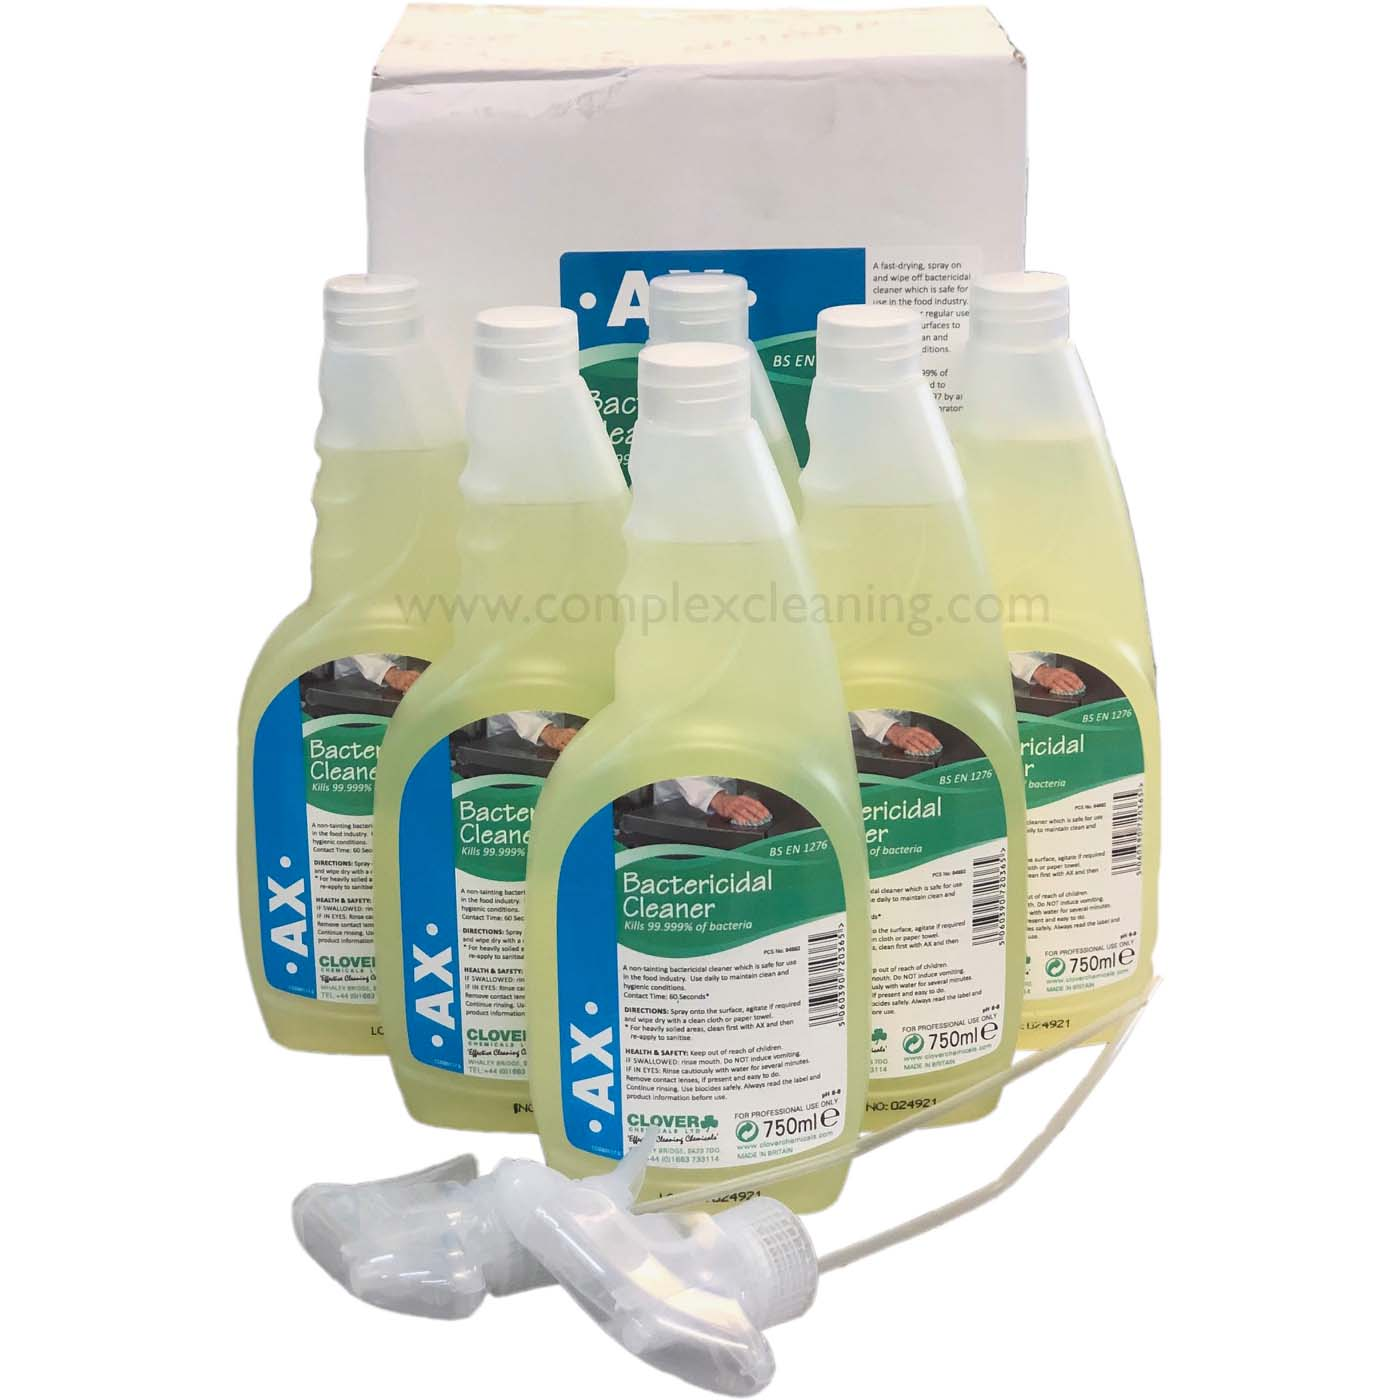 AX - Alcohol Bactericidal Cleaner EN1276 6x750ml